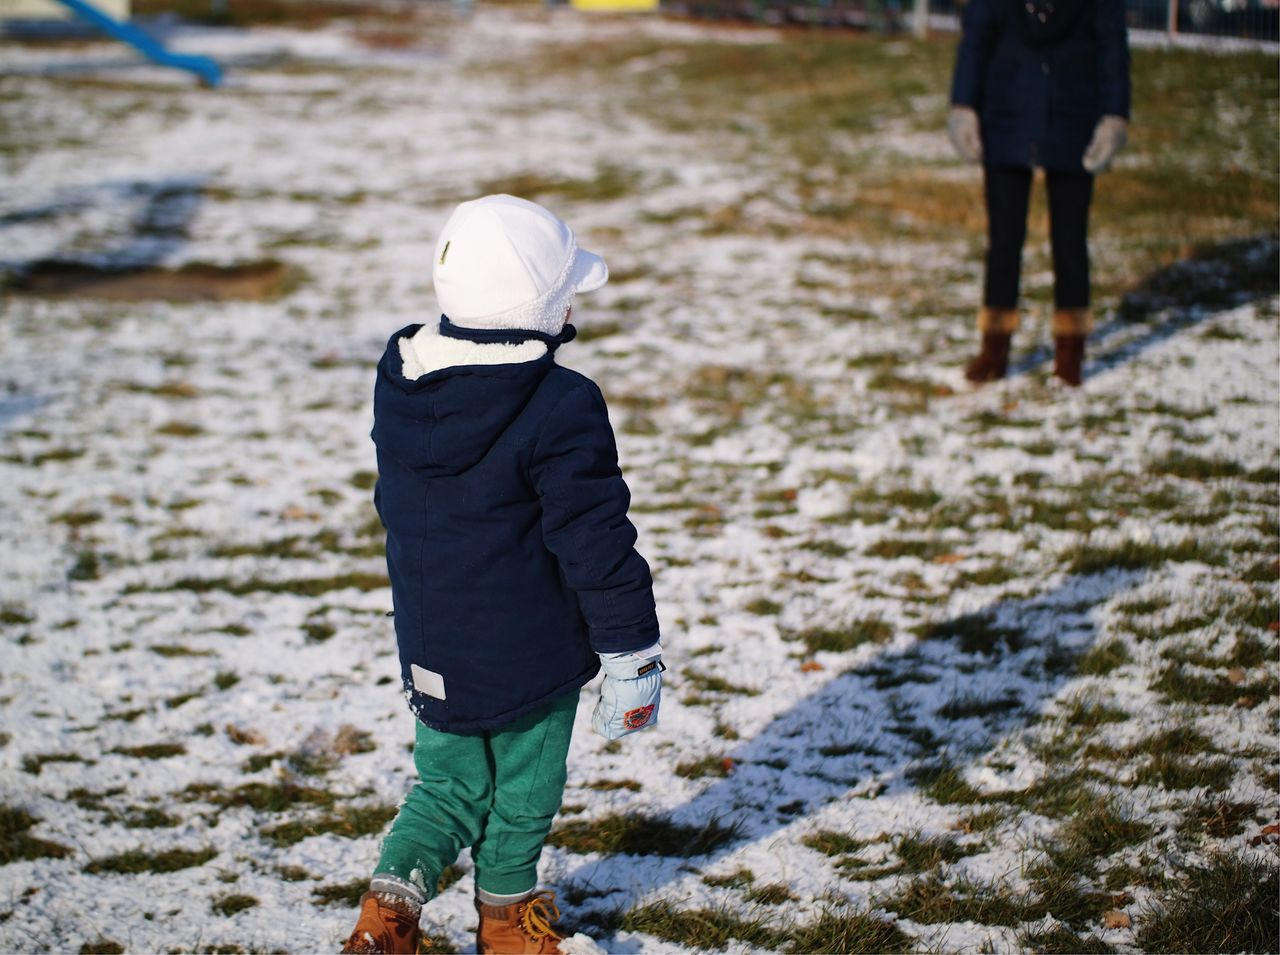 Decisions... Rear View Winter Warm Clothing Childhood Snow Cap Standing Real People Cold Temperature Nature City Life Winter Coat Winter In The City Leisure Activity Fresh On Eyeem  Made In Romania My Favorite Photo Found On The Roll Details Of My Life Fun Mother And Son Vscocam Playground Child Snow Covered